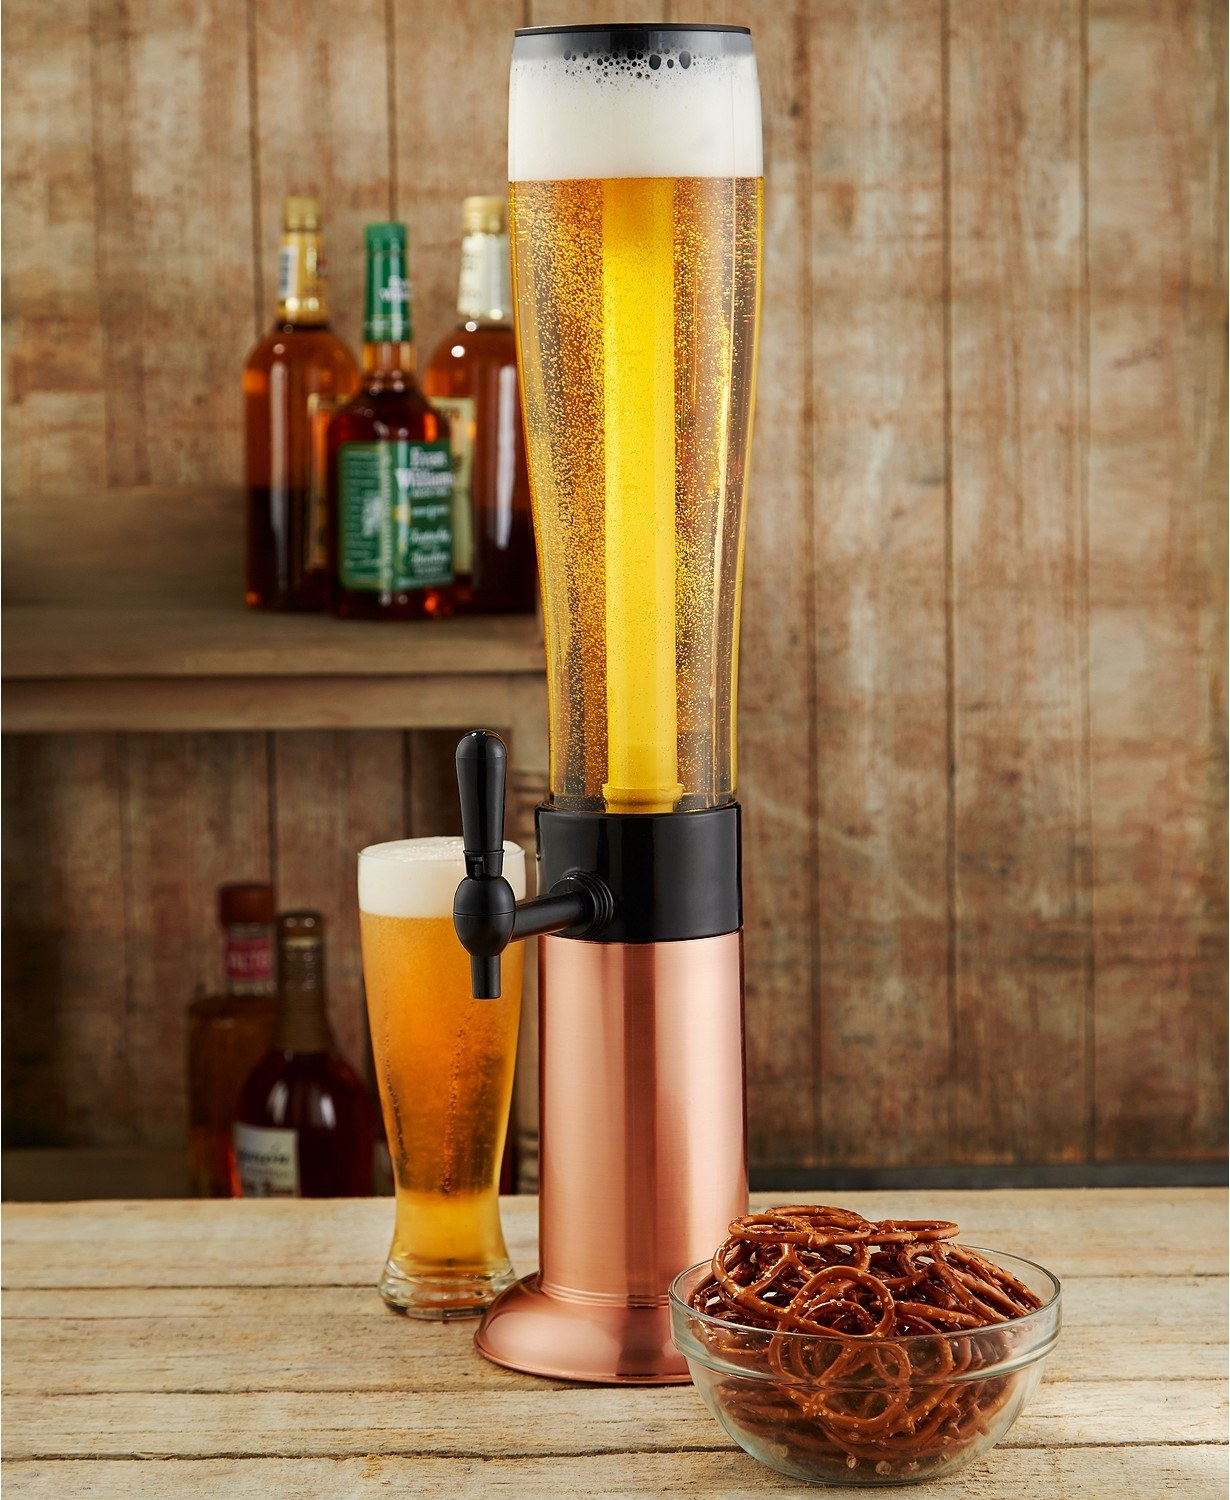 The beer tower with a spigot and ice rod